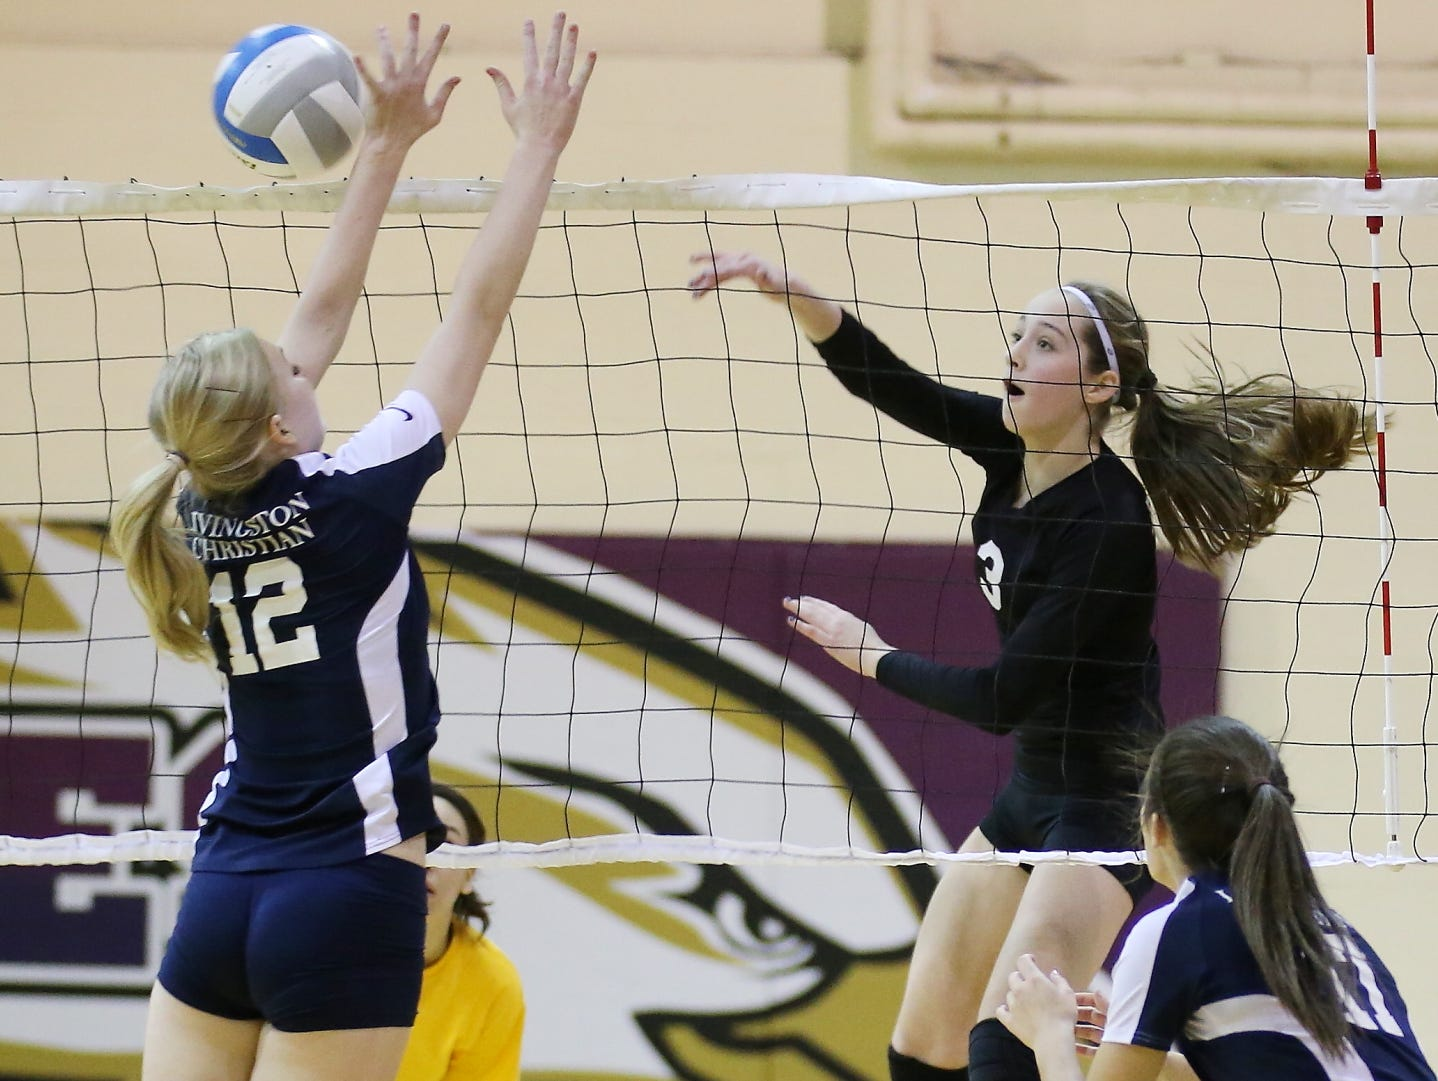 Hammering a spike over the outstretched arms of Livingston Christian's Sarah Wenger (No. 12) is PCA's Grace Kellogg (No. 3).